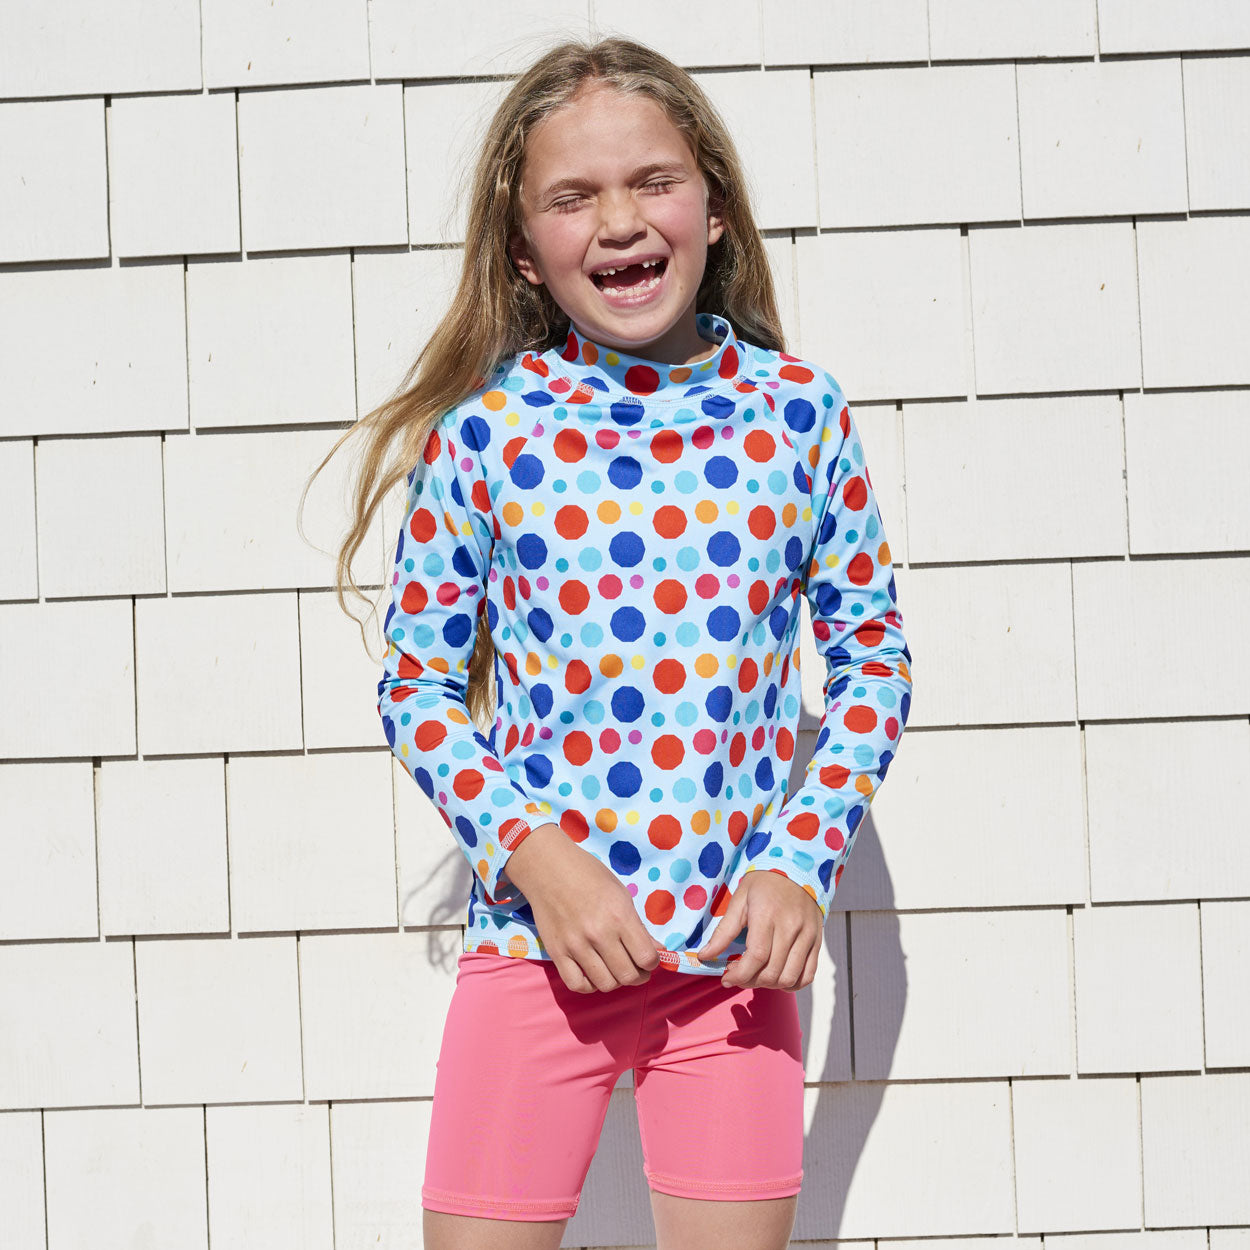 Coral Sunblocker Shorts UPF 50+ for Girls